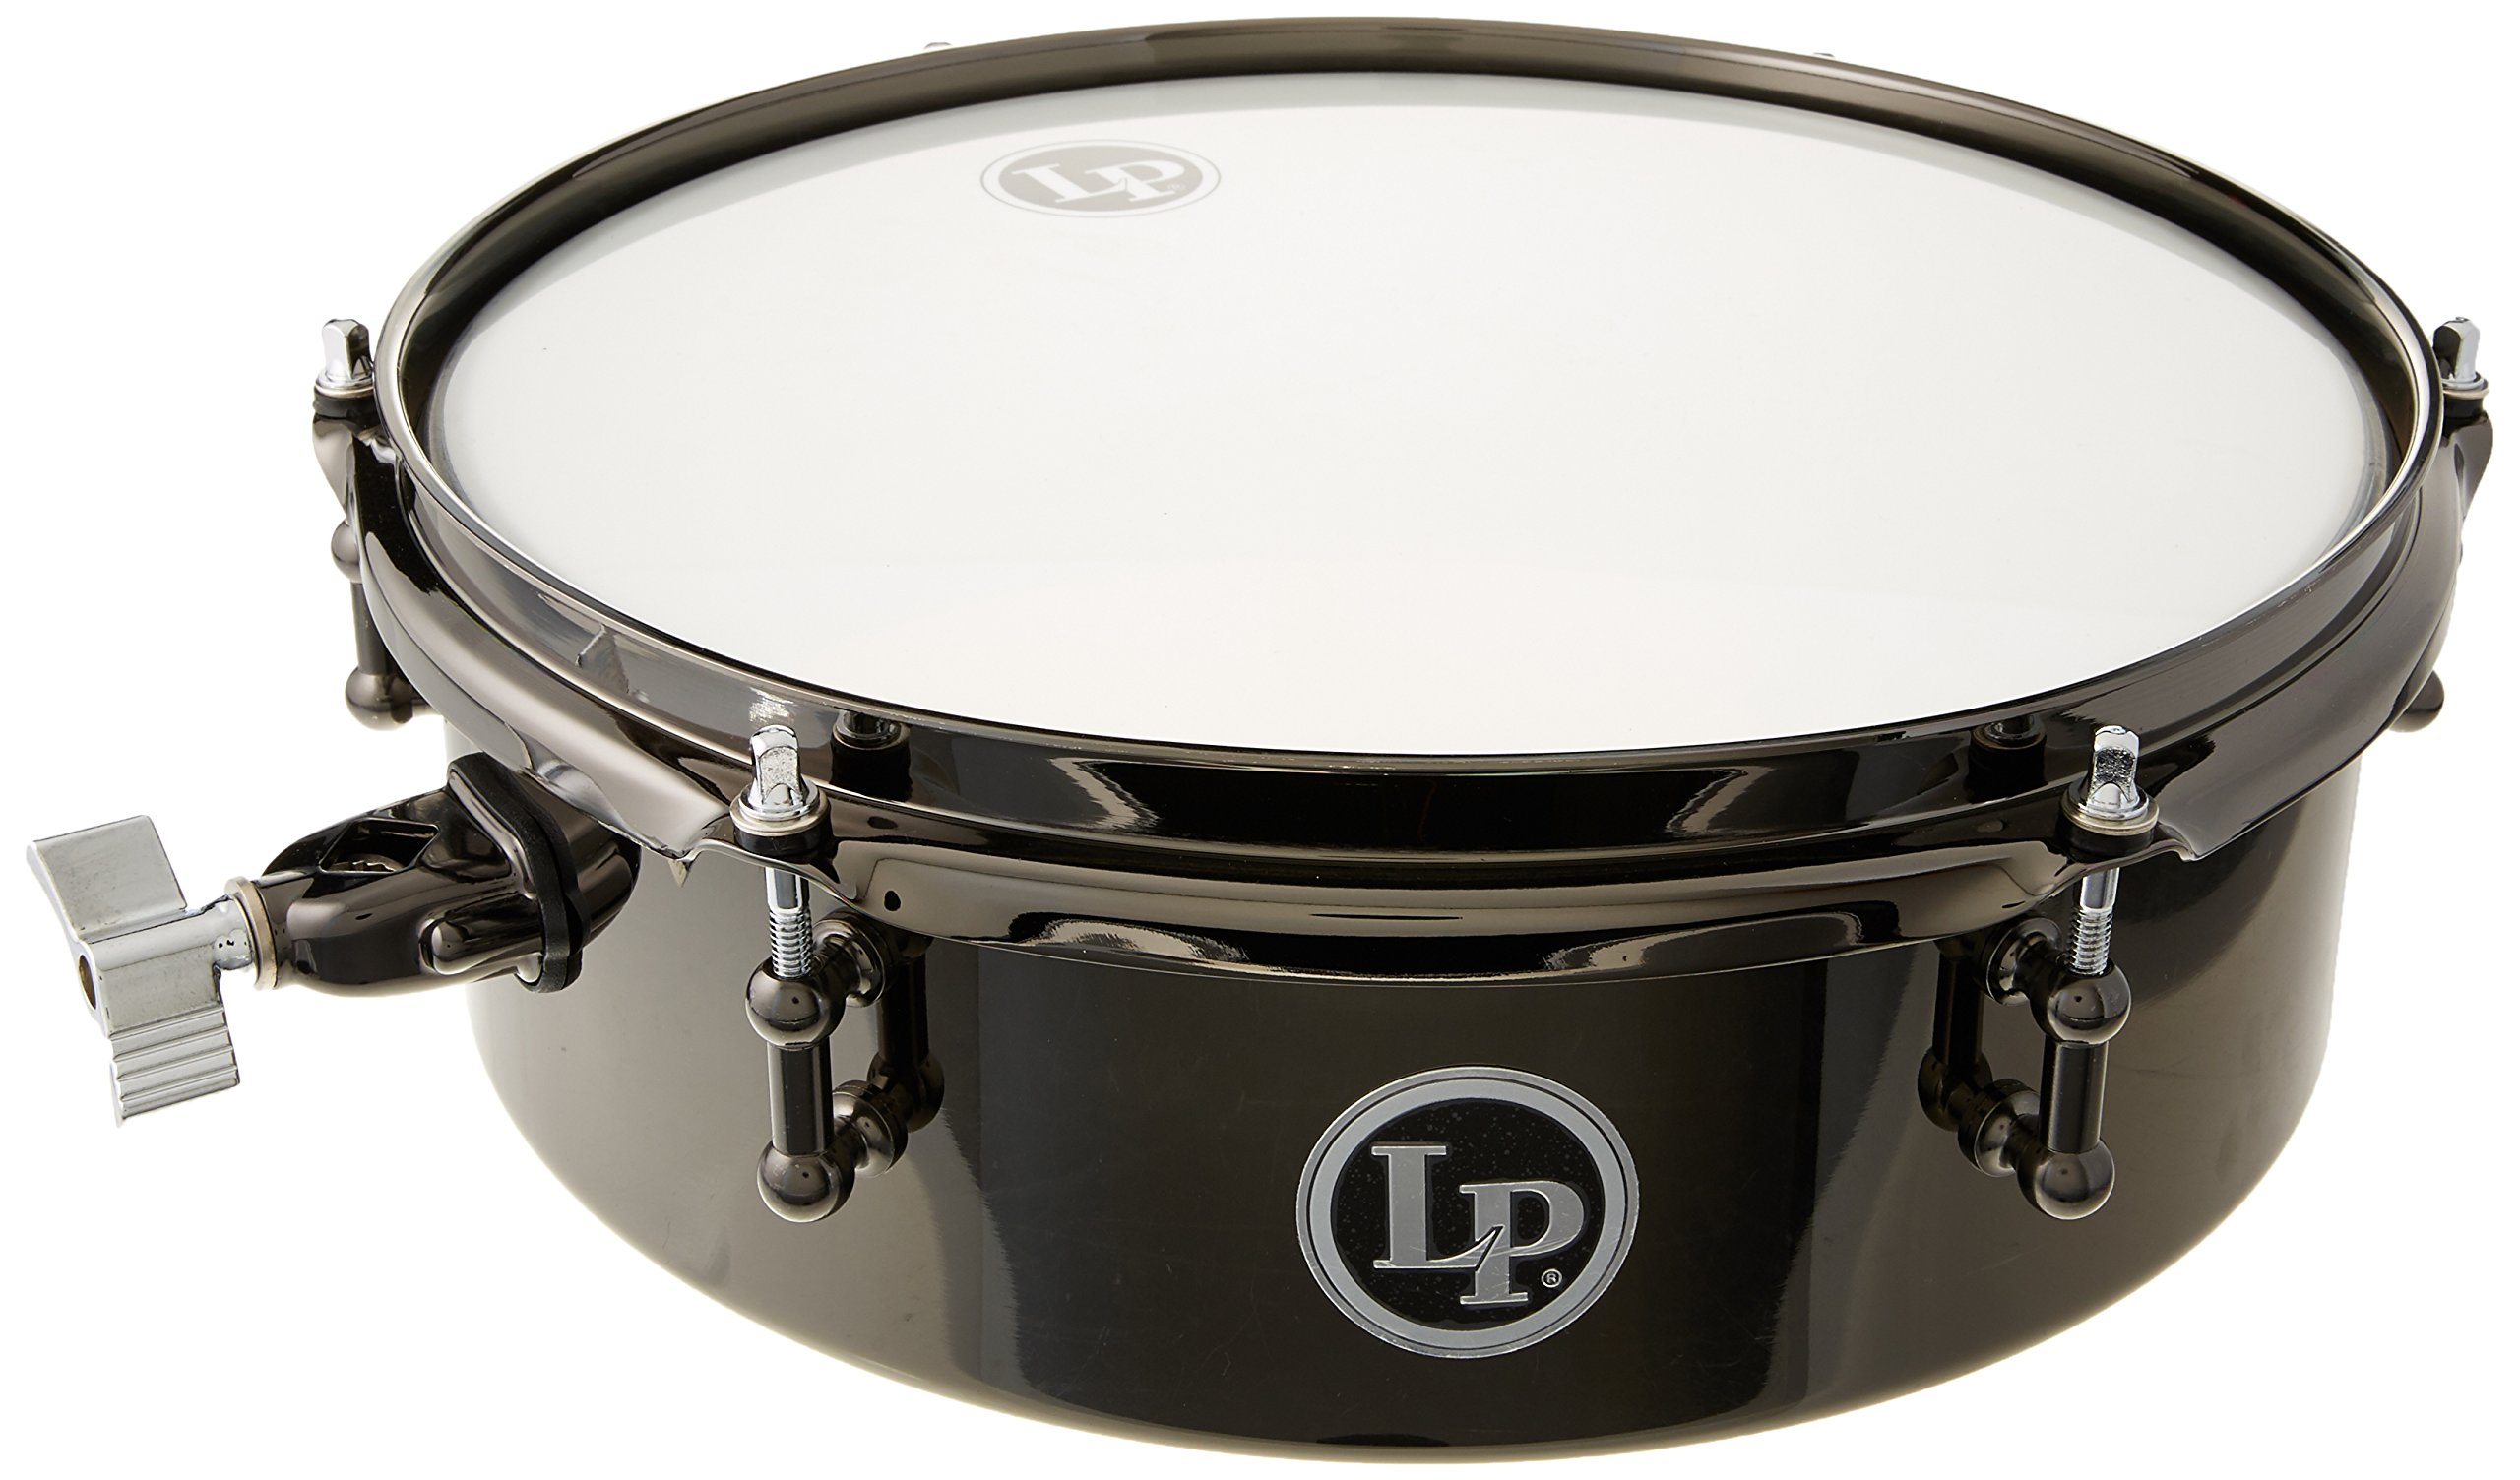 Lp Drum Set Timbale 4X12 Black Nickle by Latin Percussion